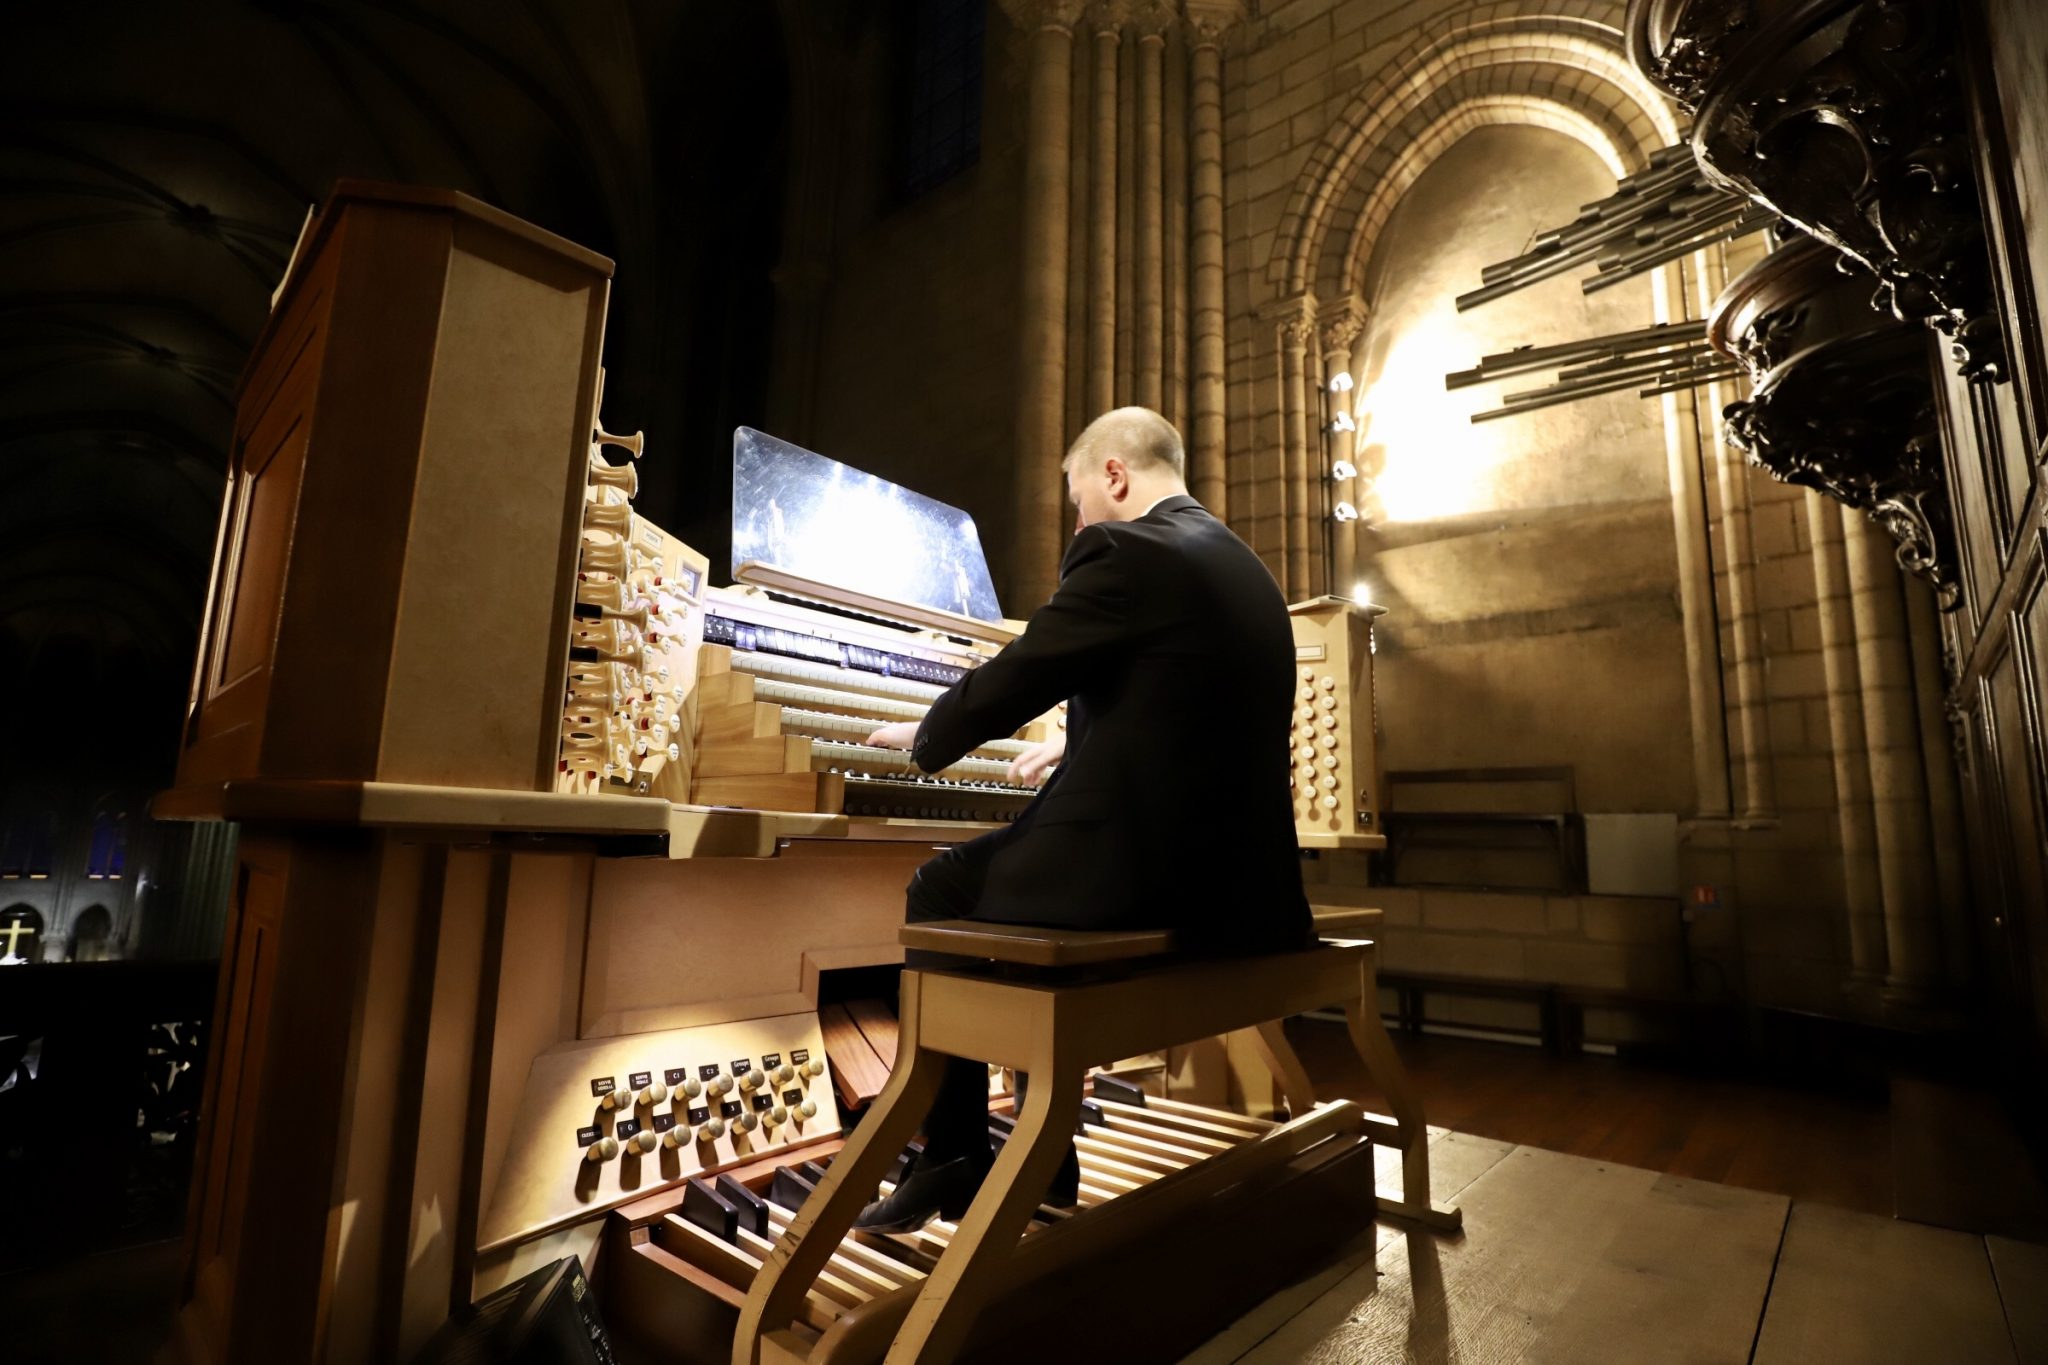 Notre-Dame de Paris support concert with the participation of Notre-Dame organist, Johann Vexo